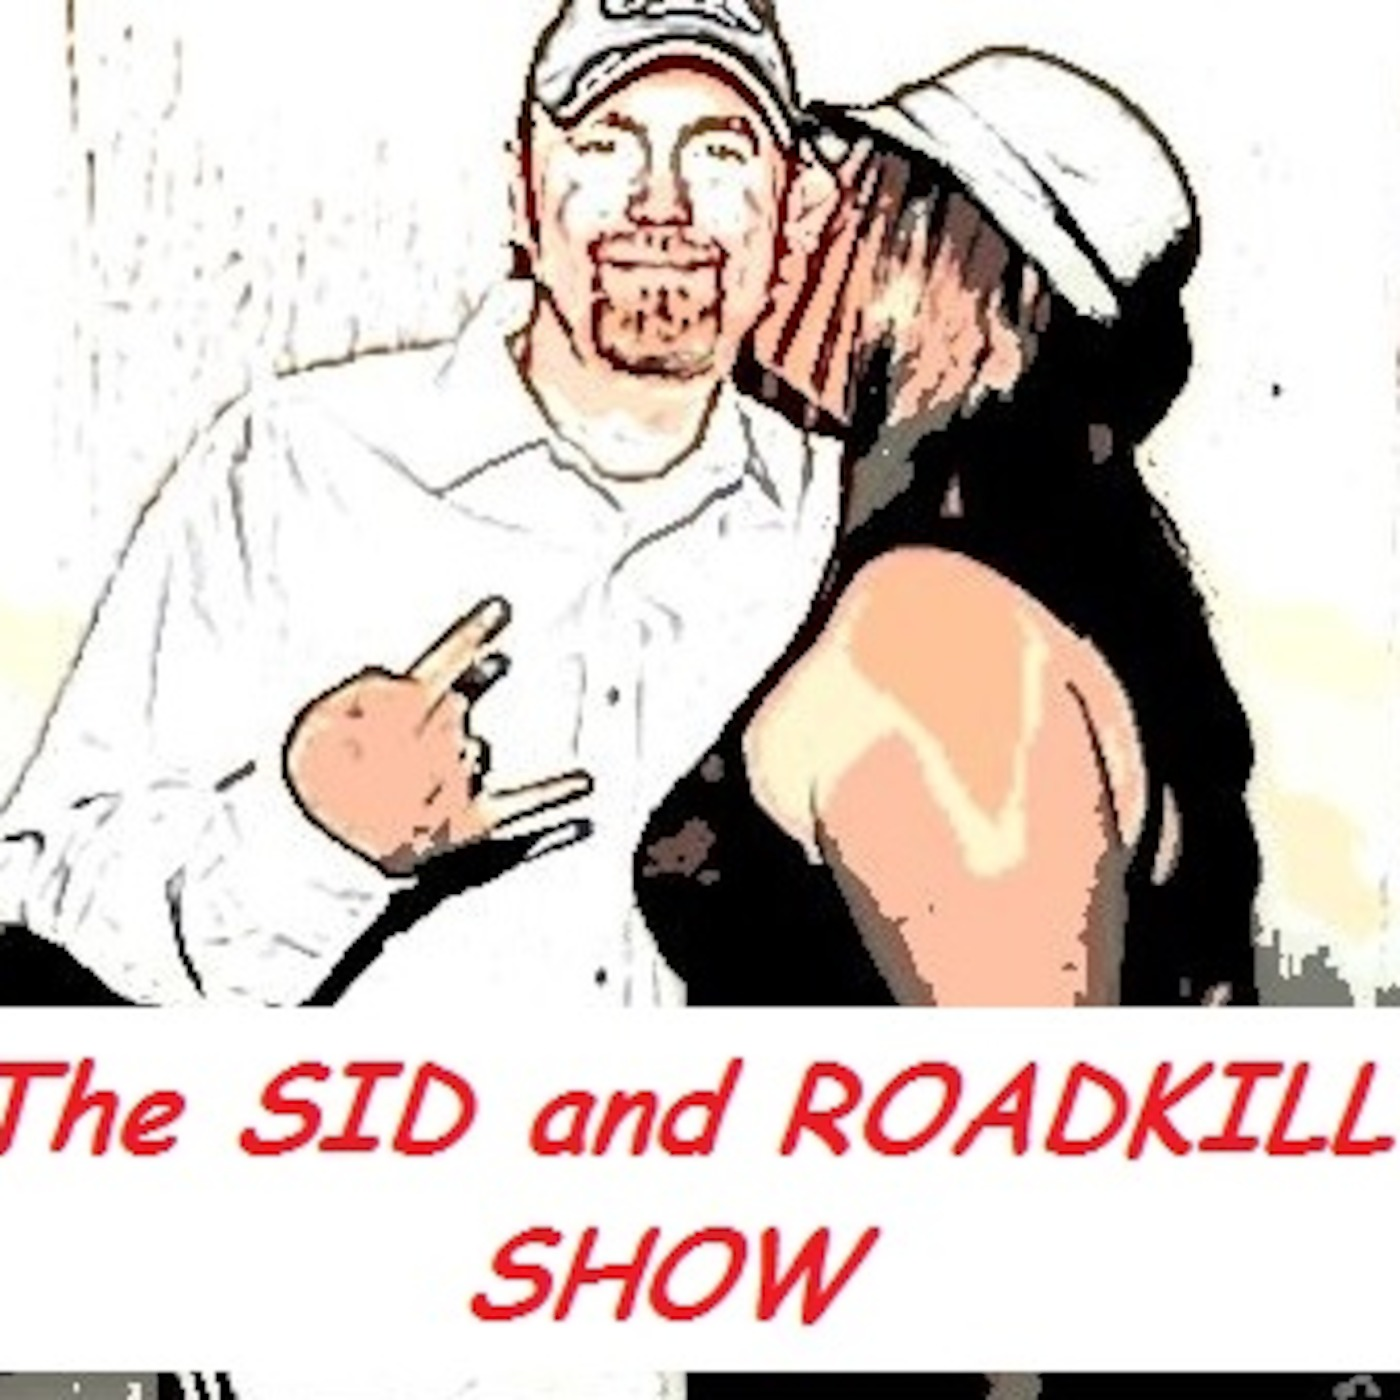 The Sid and Roadkill Show | Listen via Stitcher for Podcasts